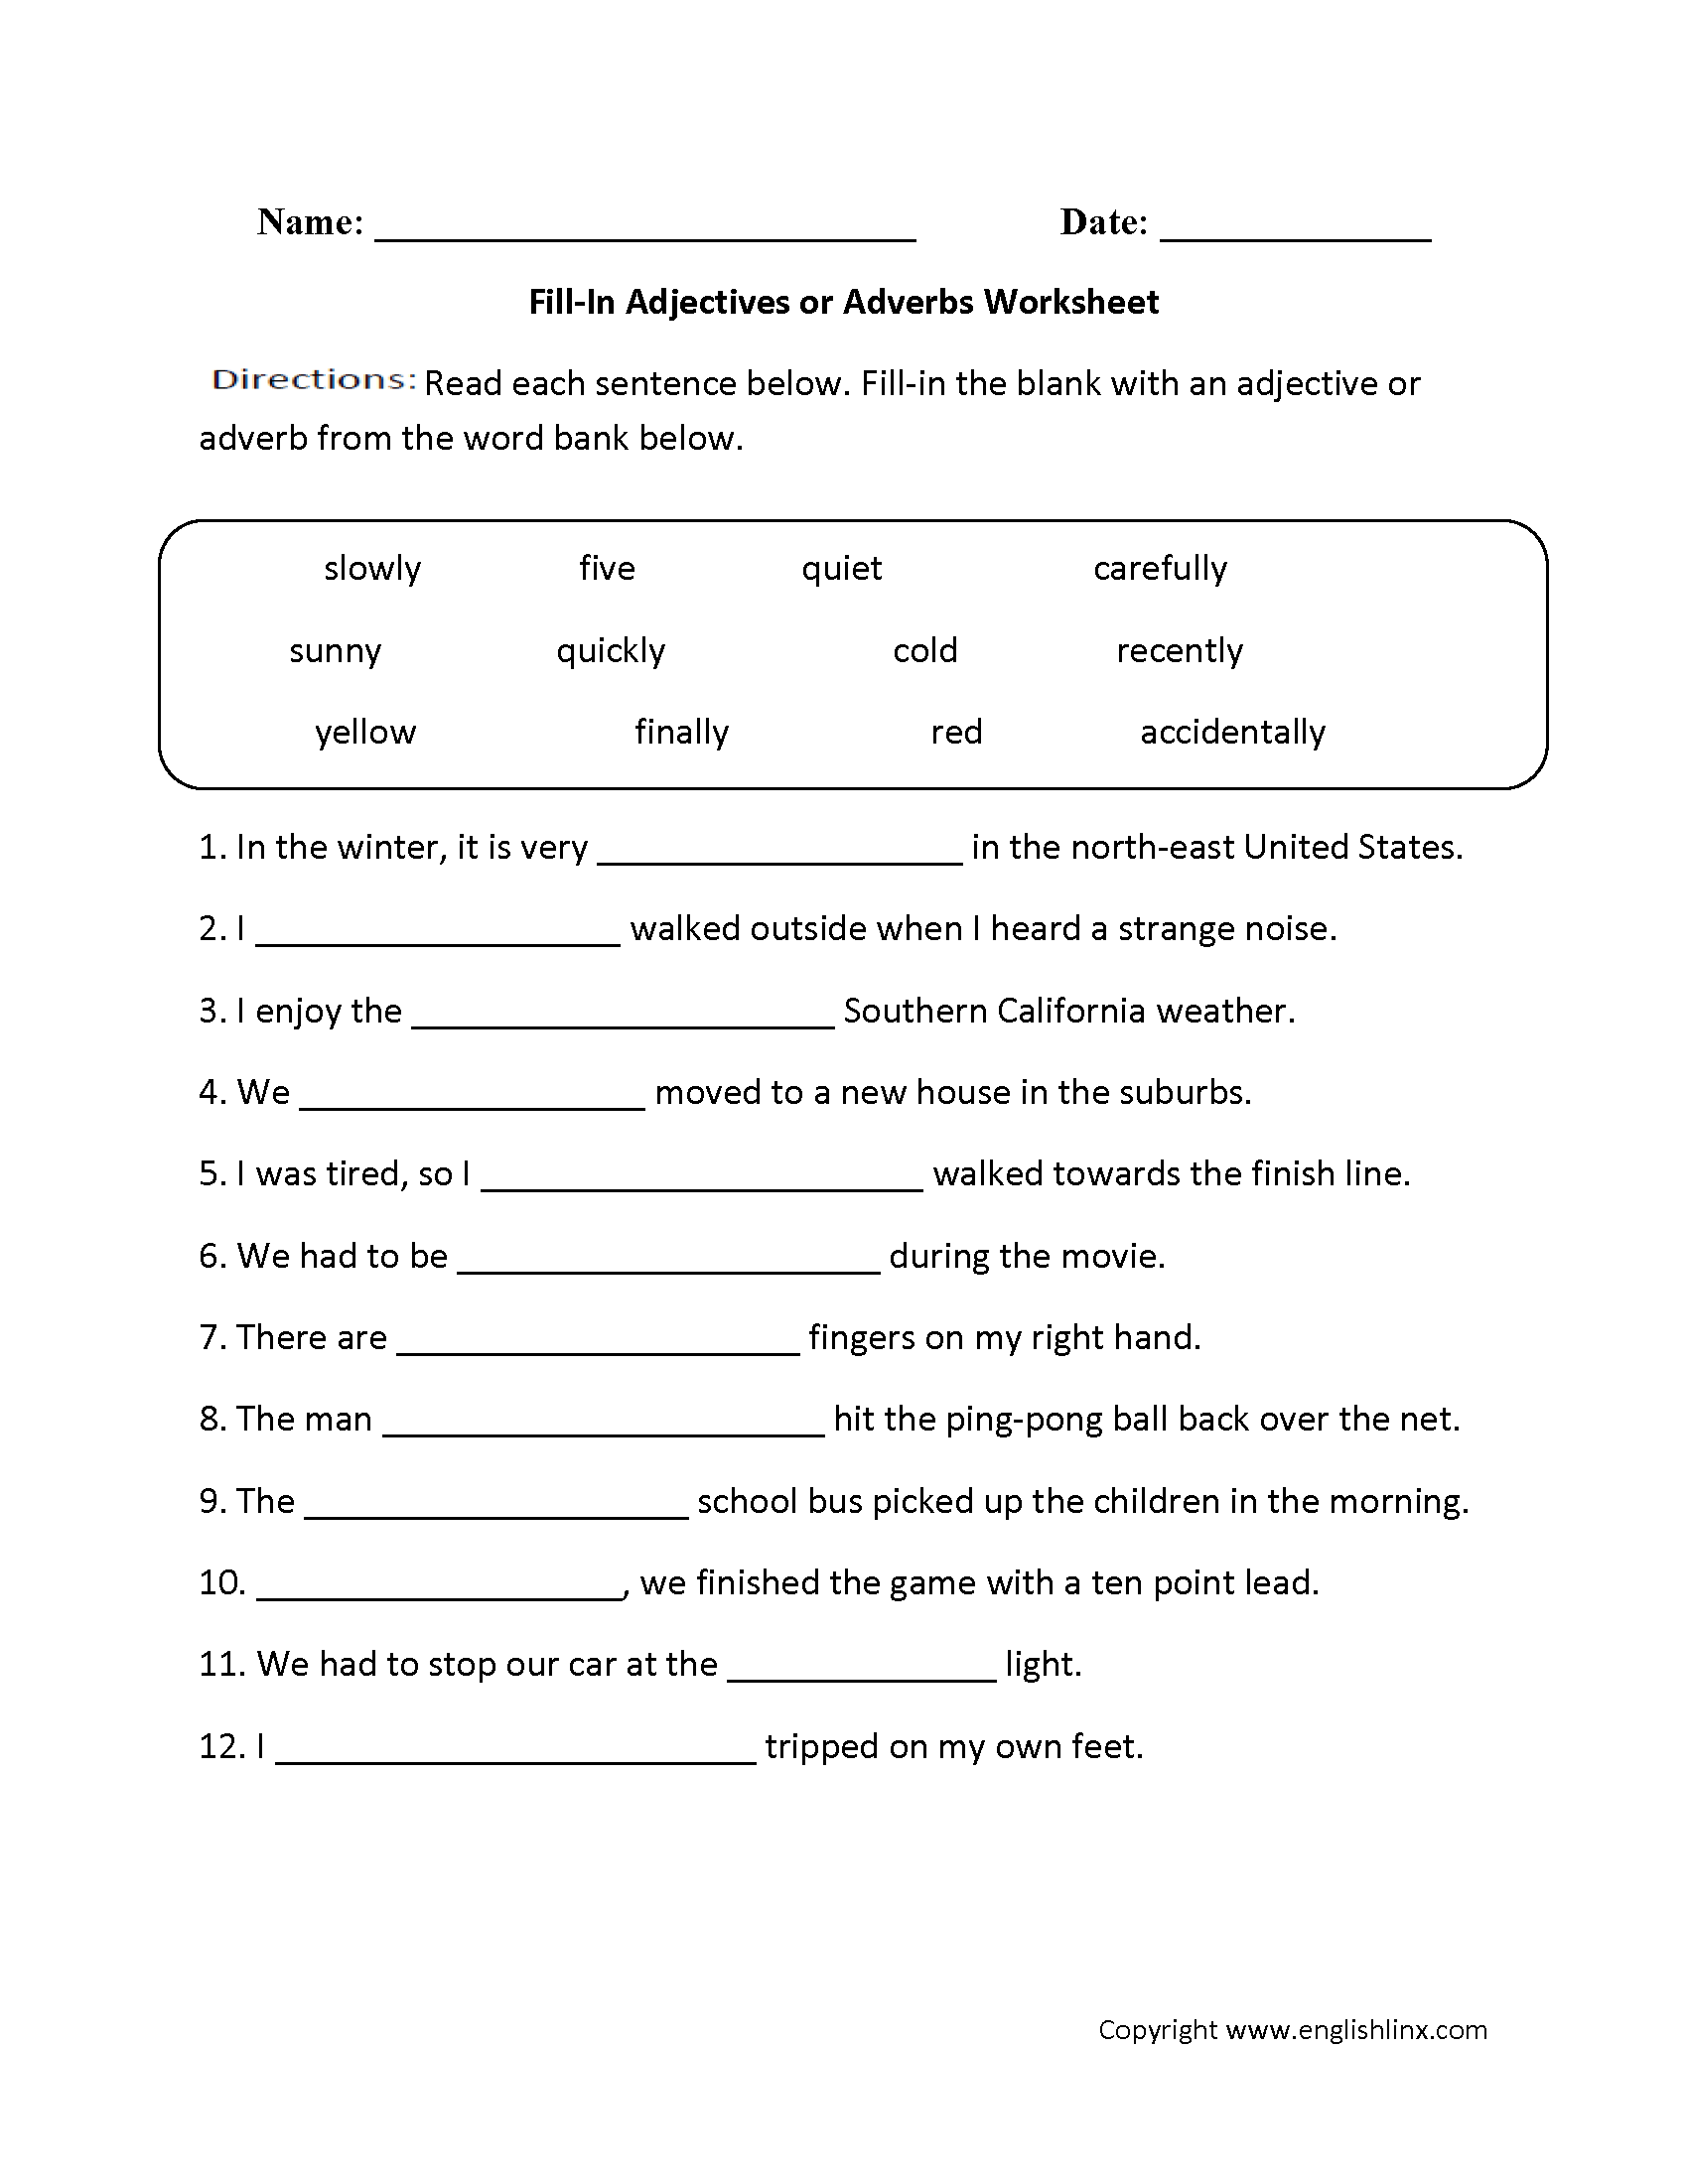 Worksheet Adjectives Worksheet For 3rd Grade adjectives worksheets or adverbs worksheet